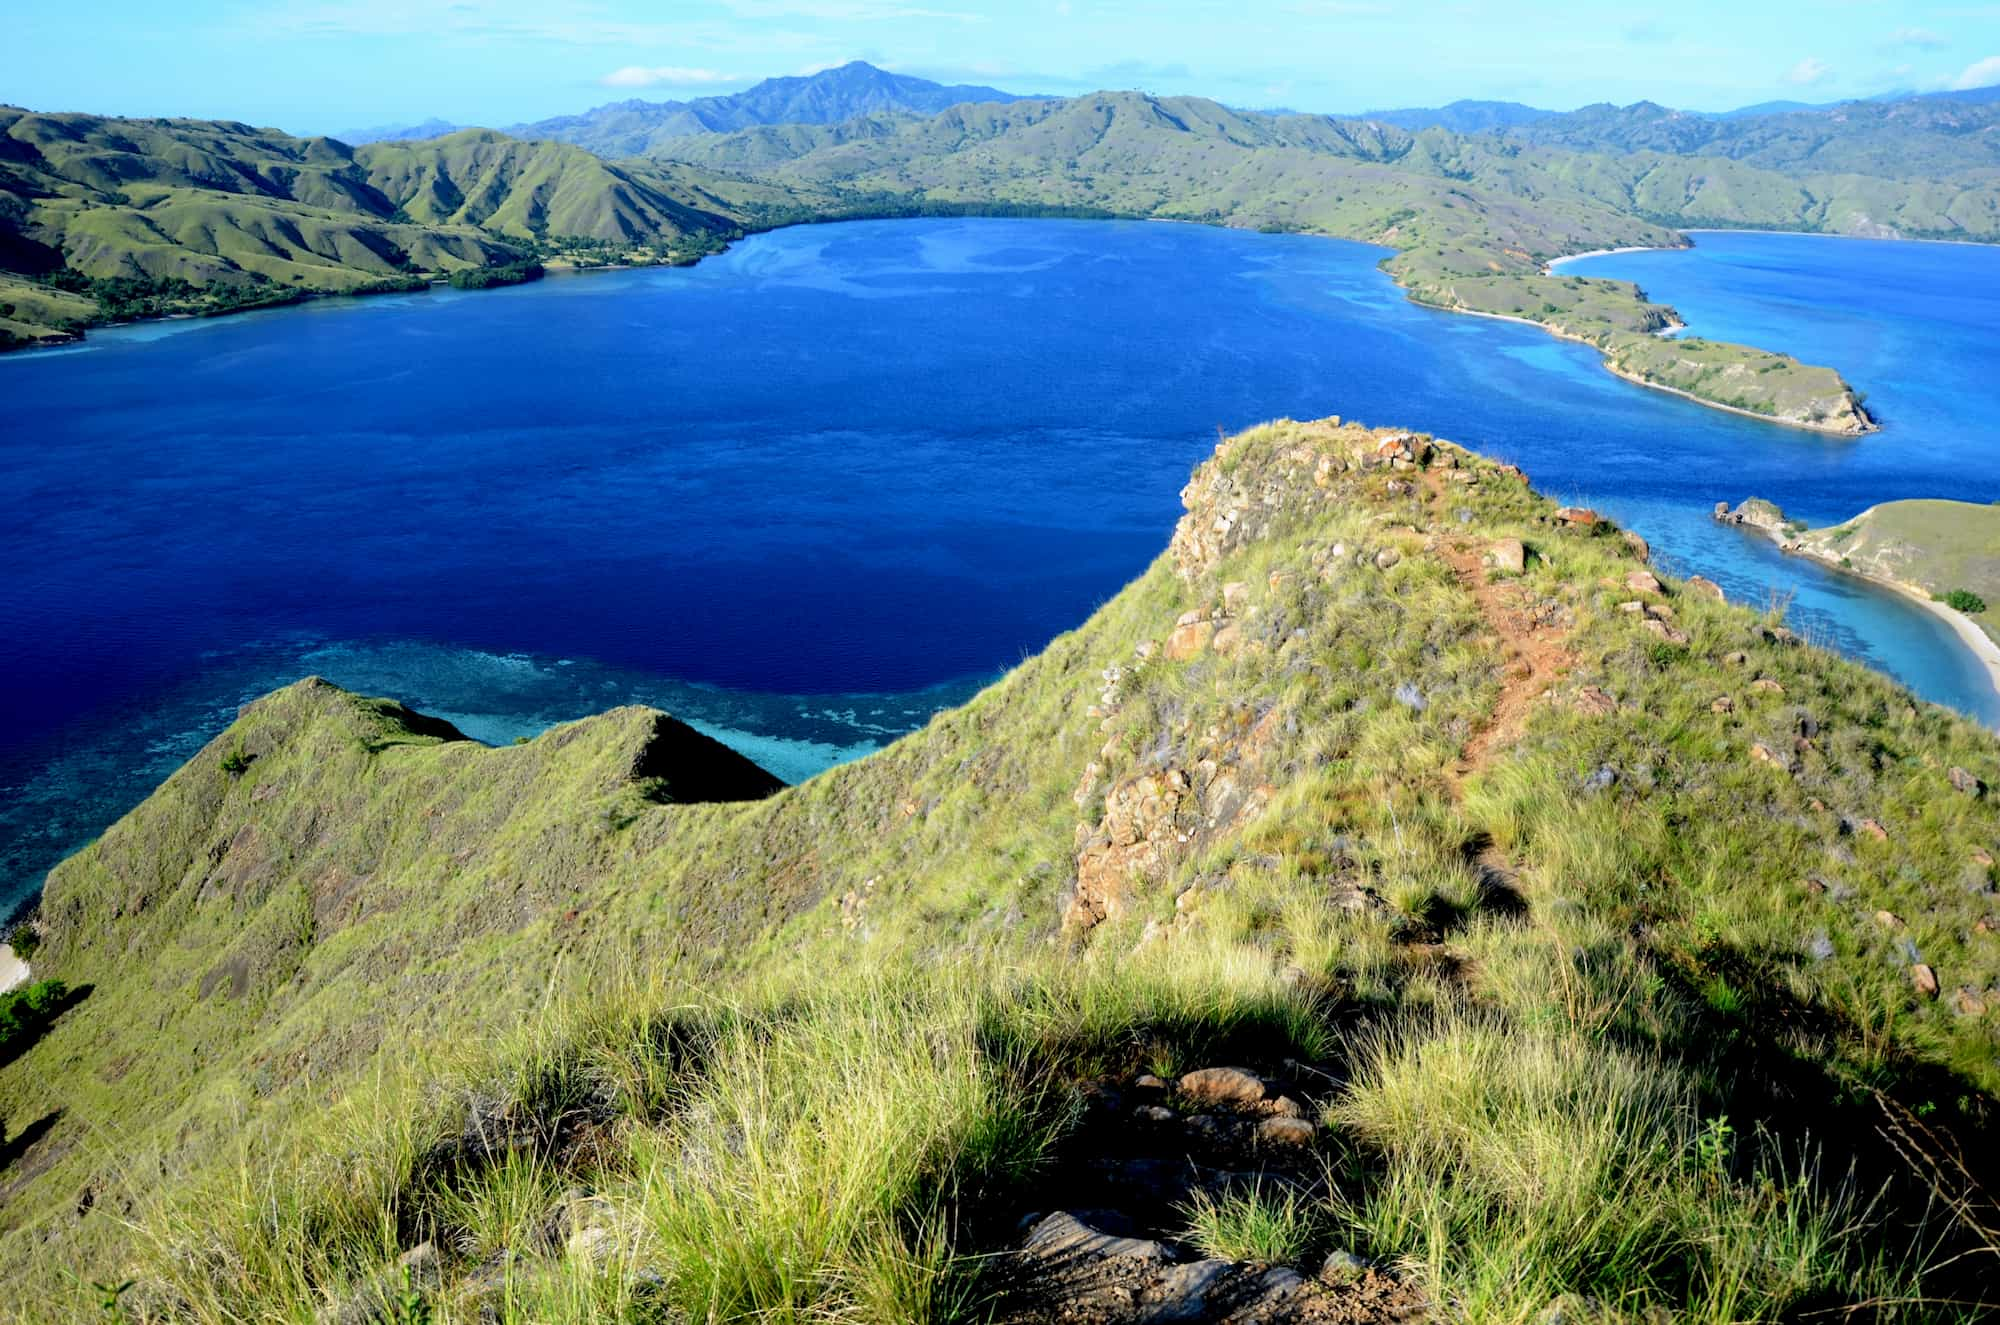 A view of the Komodo National Park with grassy islands and water visible.